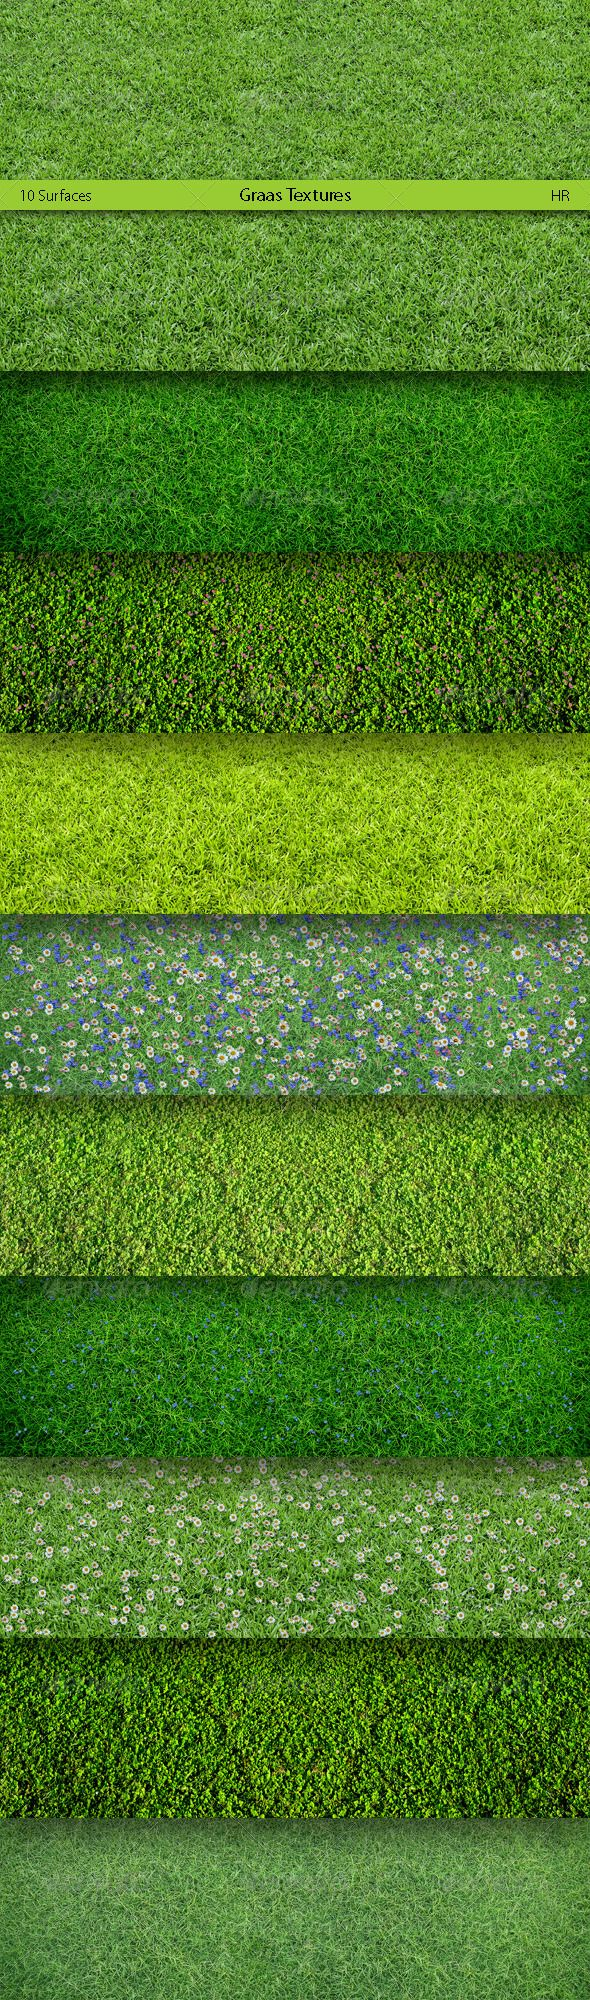 Grass Surfaces Texture Backgrounds - Nature Backgrounds